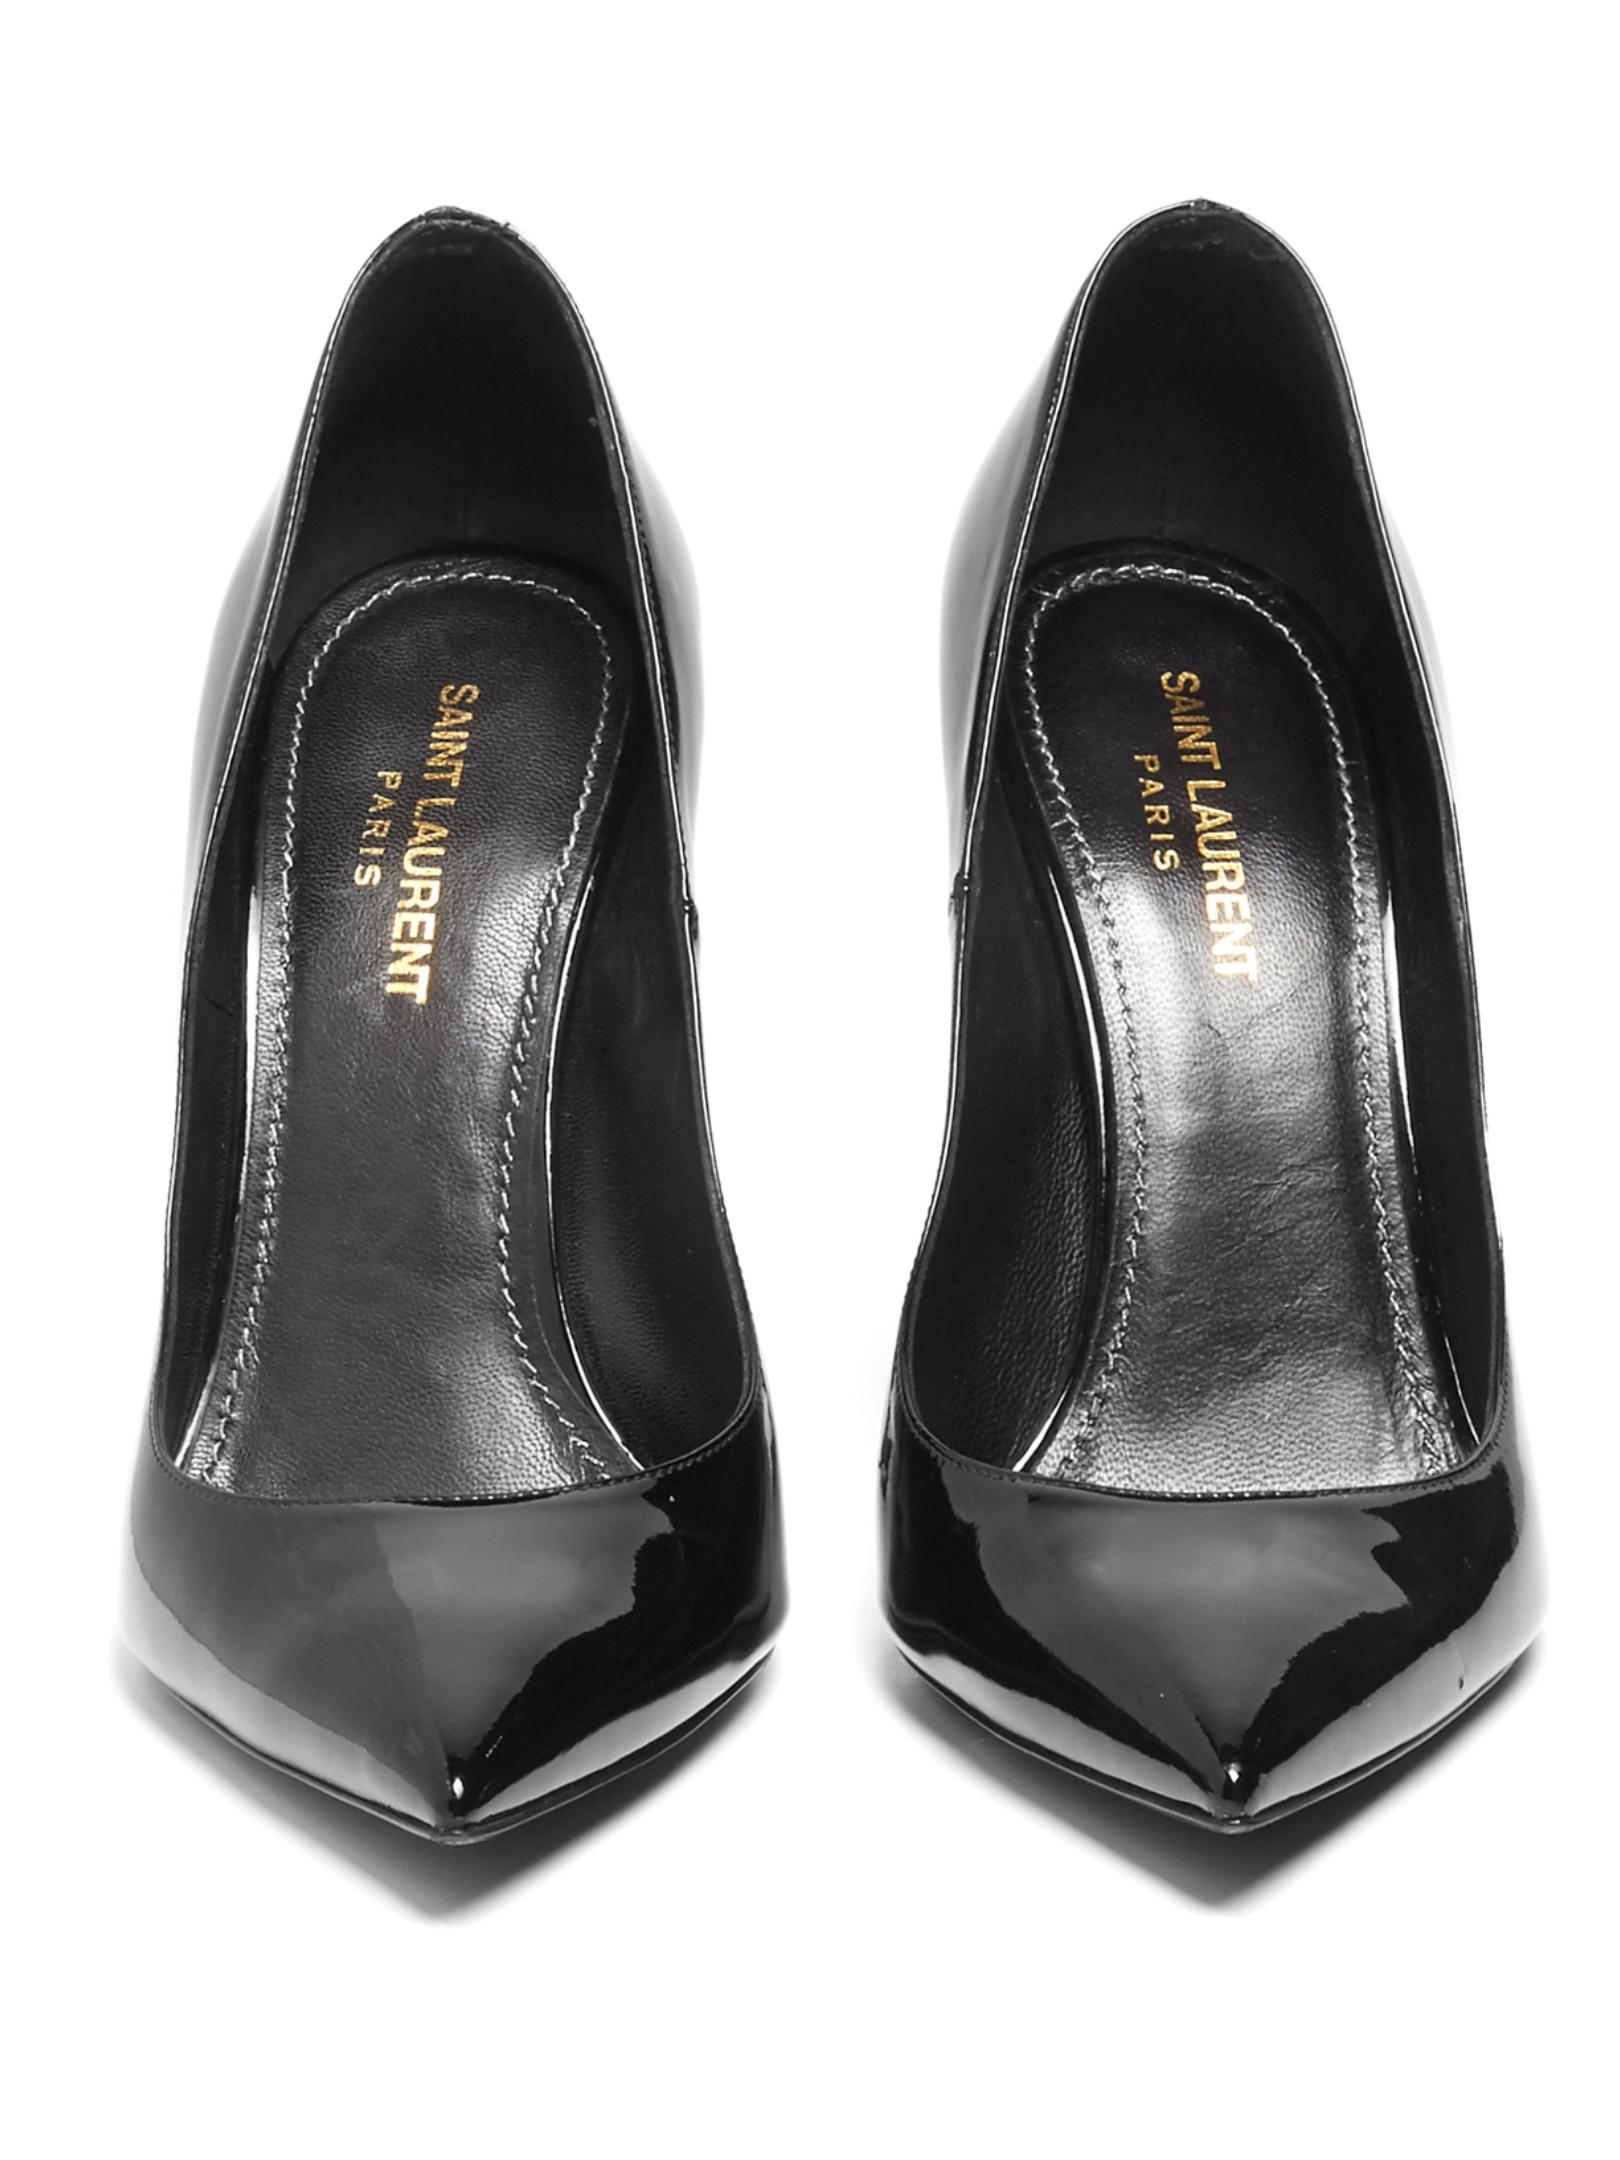 Black Patent Leather Court Shoes Uk